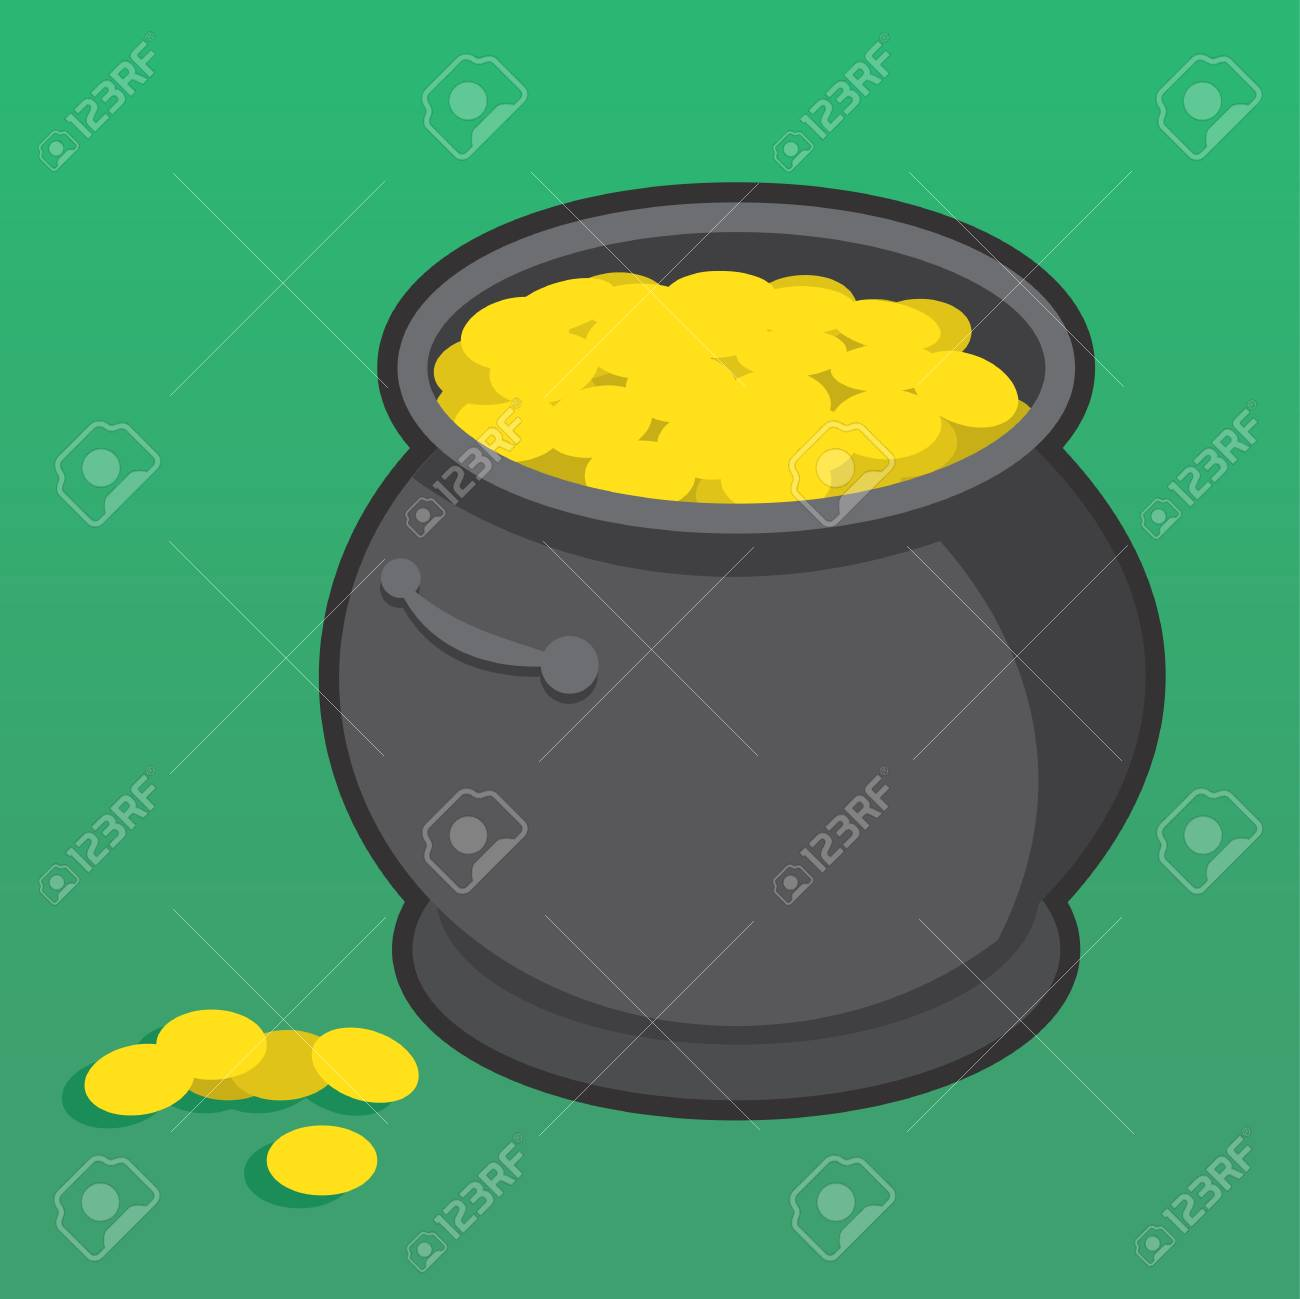 Pot of gold with many coins Stock Vector - 18424566